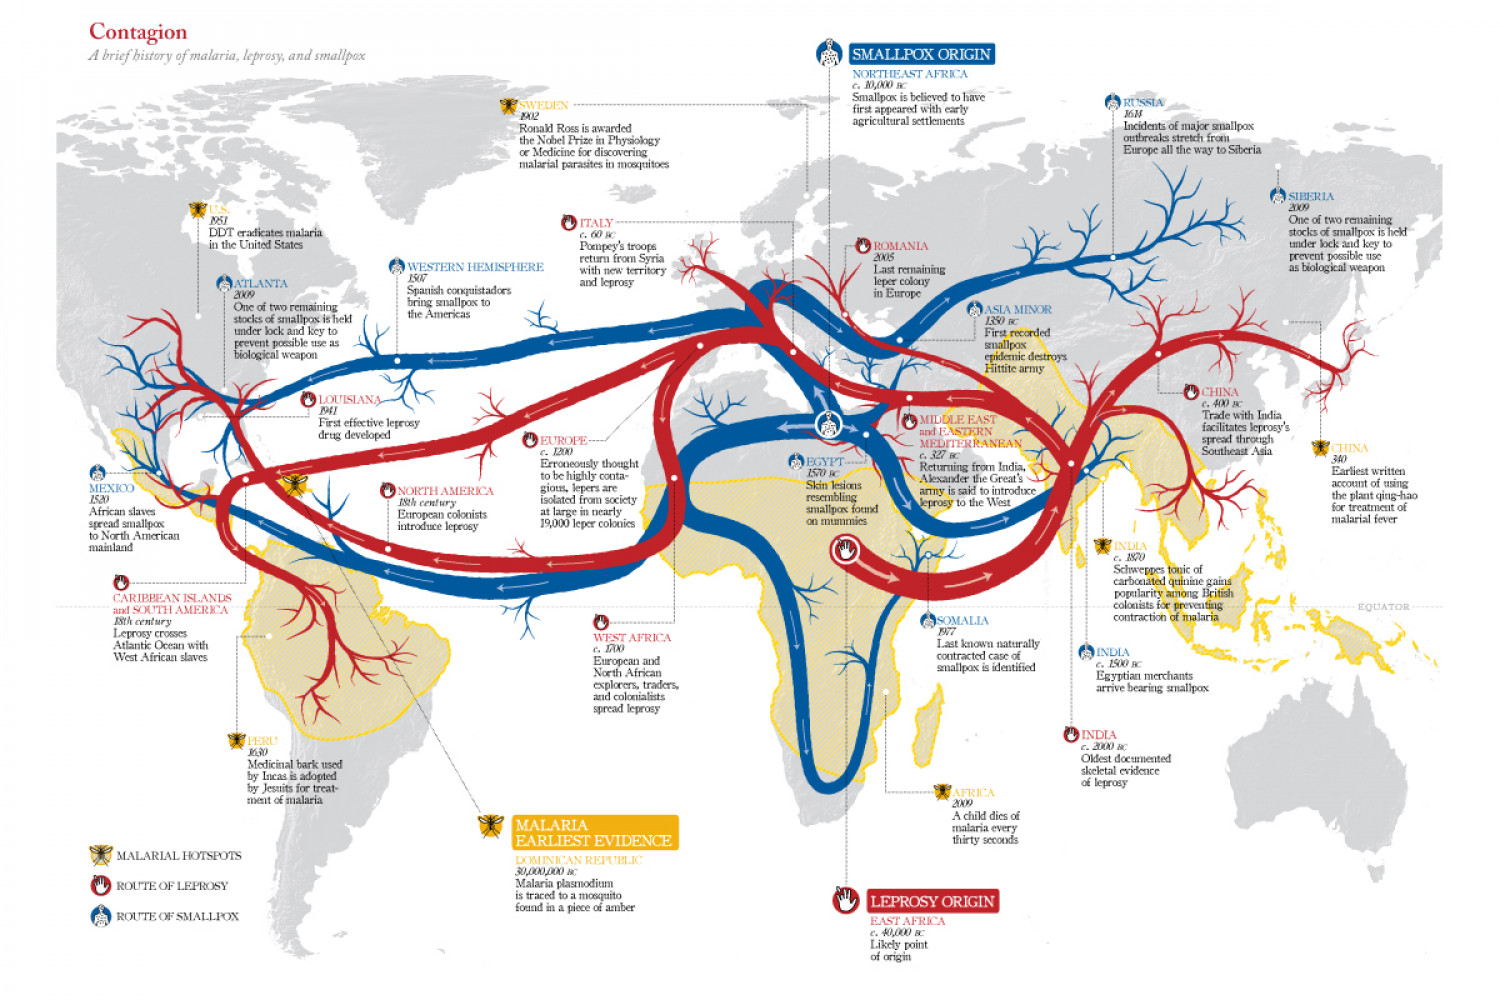 Contagion: A Brief History Of Malaria, Leprosy, and Smallpox Infographic